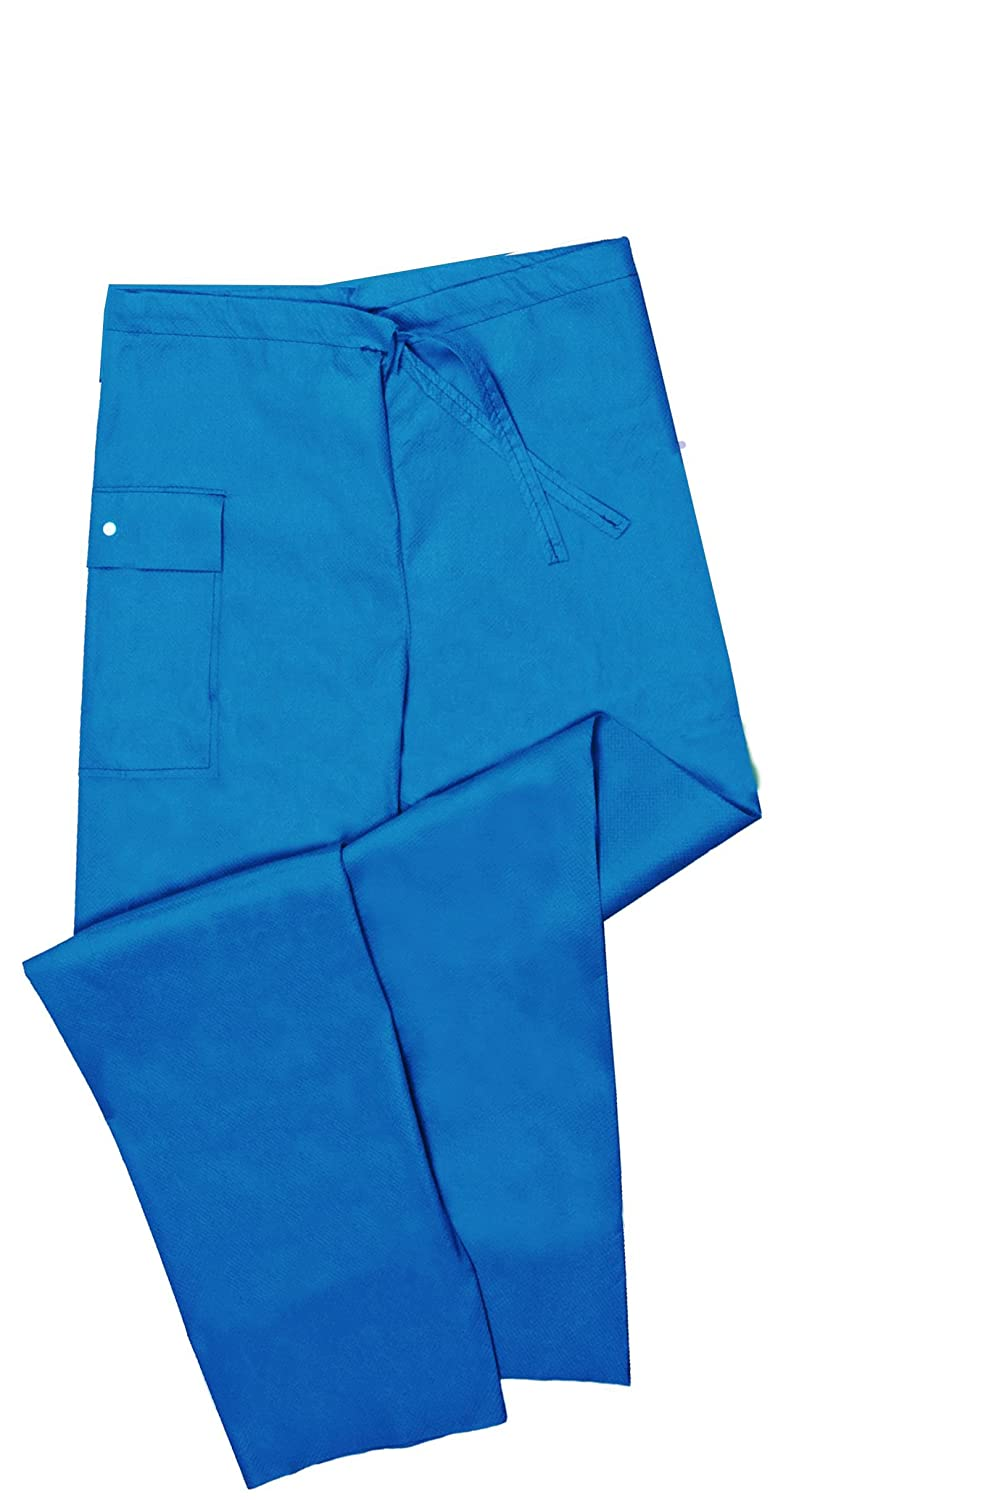 Molnlycke Barrier Scrub Pant Drawstring Sales for sale Small Pants 21710 National products Blue